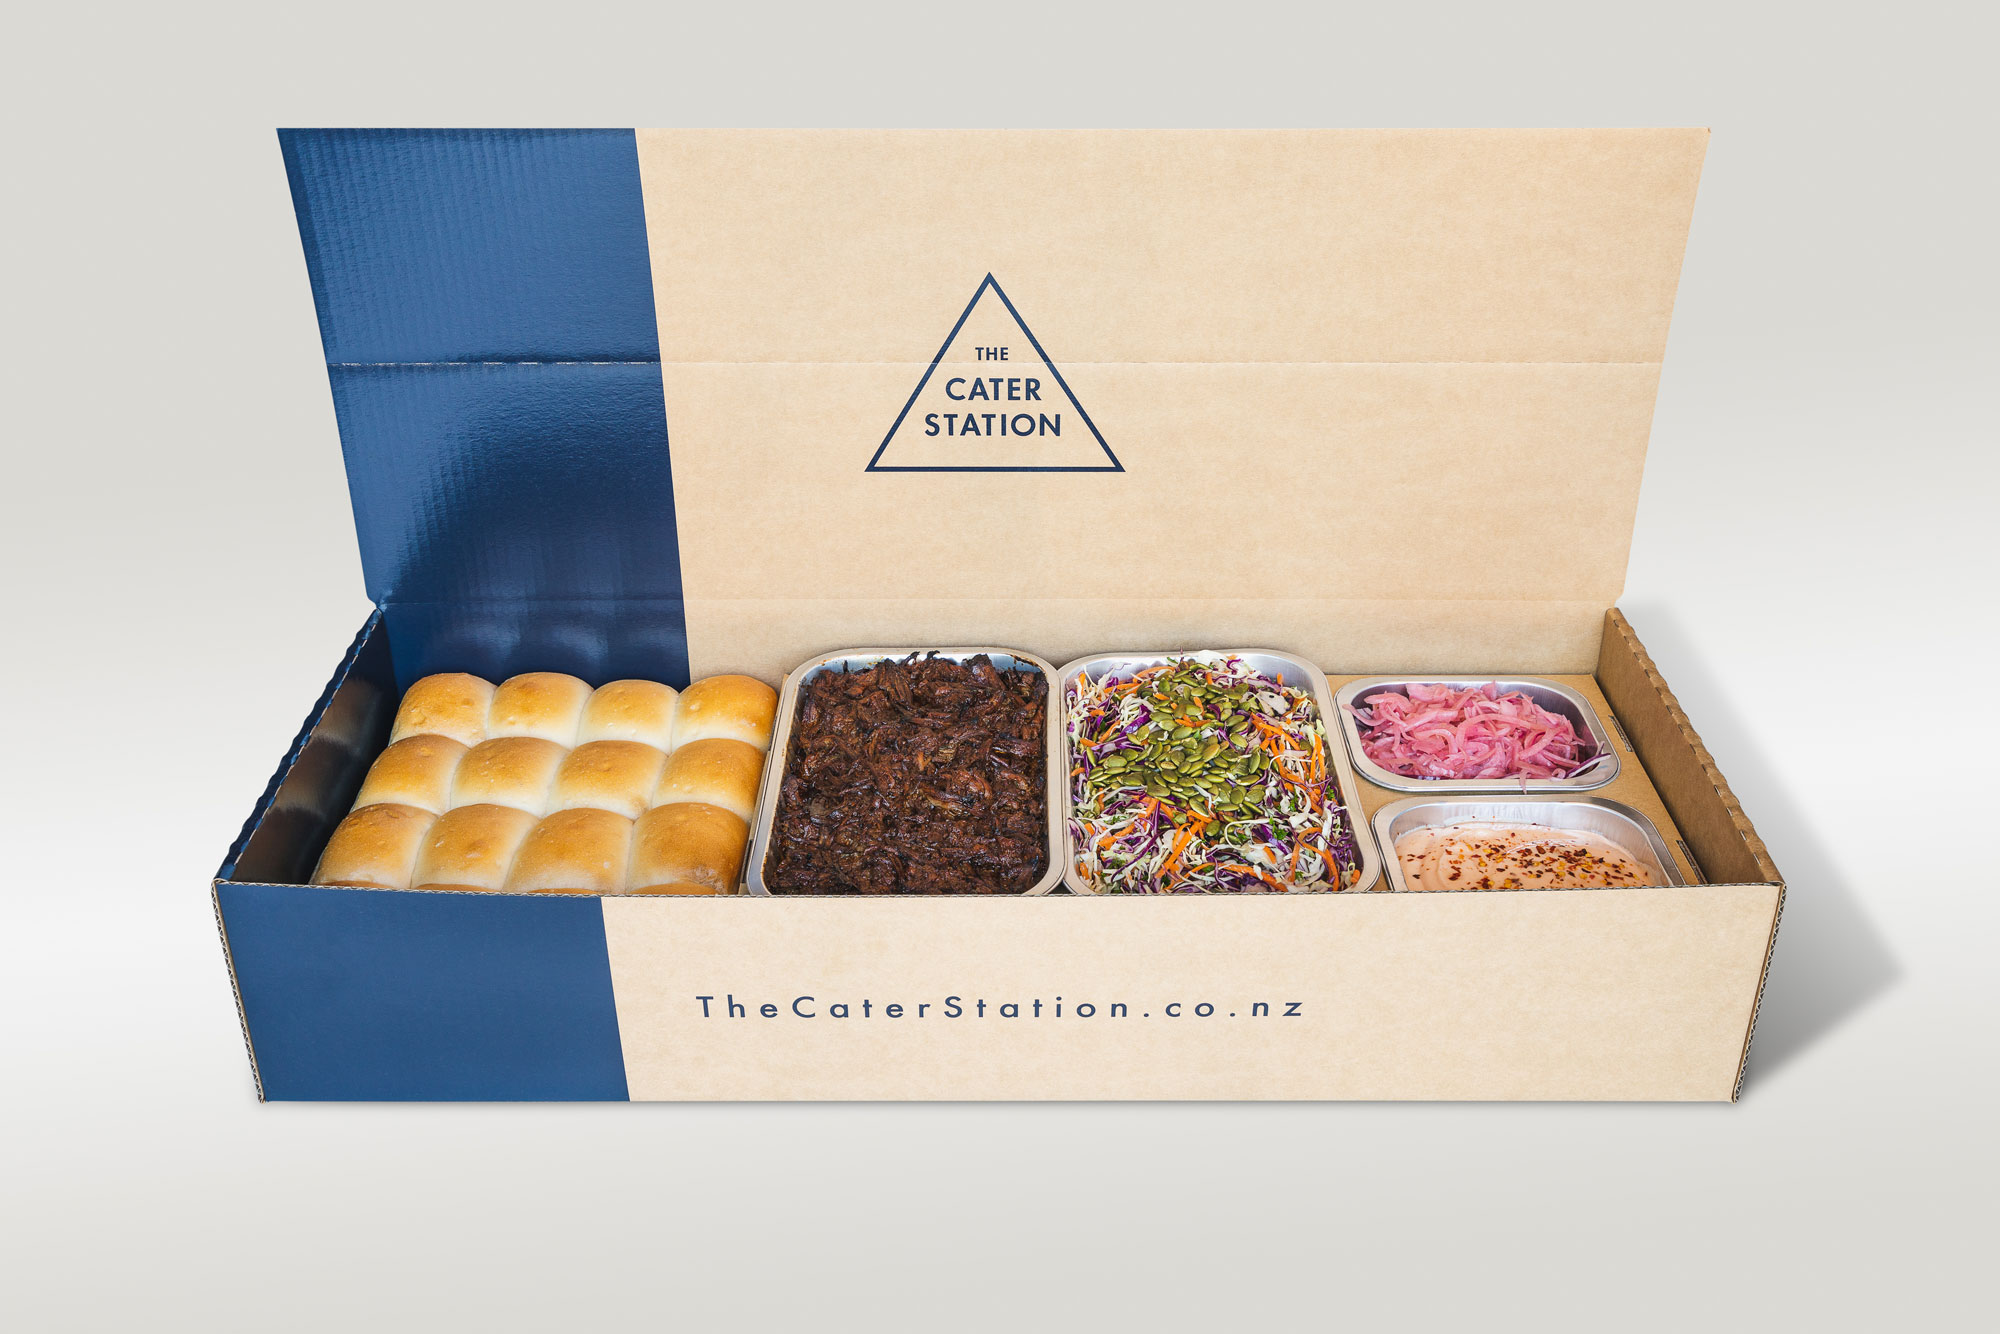 The Cater Station | Cab Creative